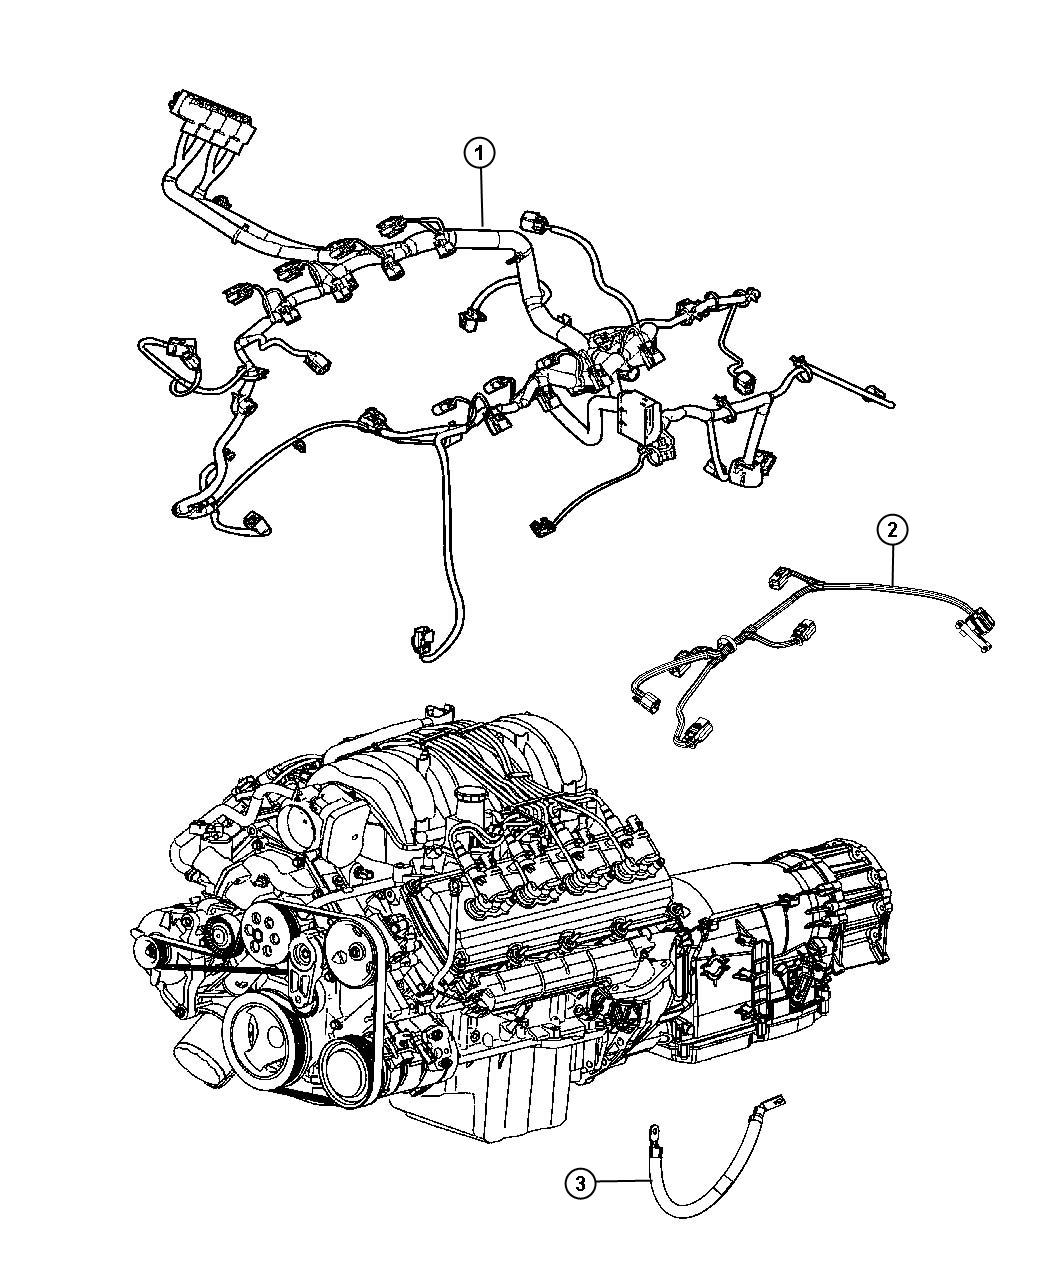 Jeep Grand Cherokee Wiring. Engine. Gas, powertrain, mopar